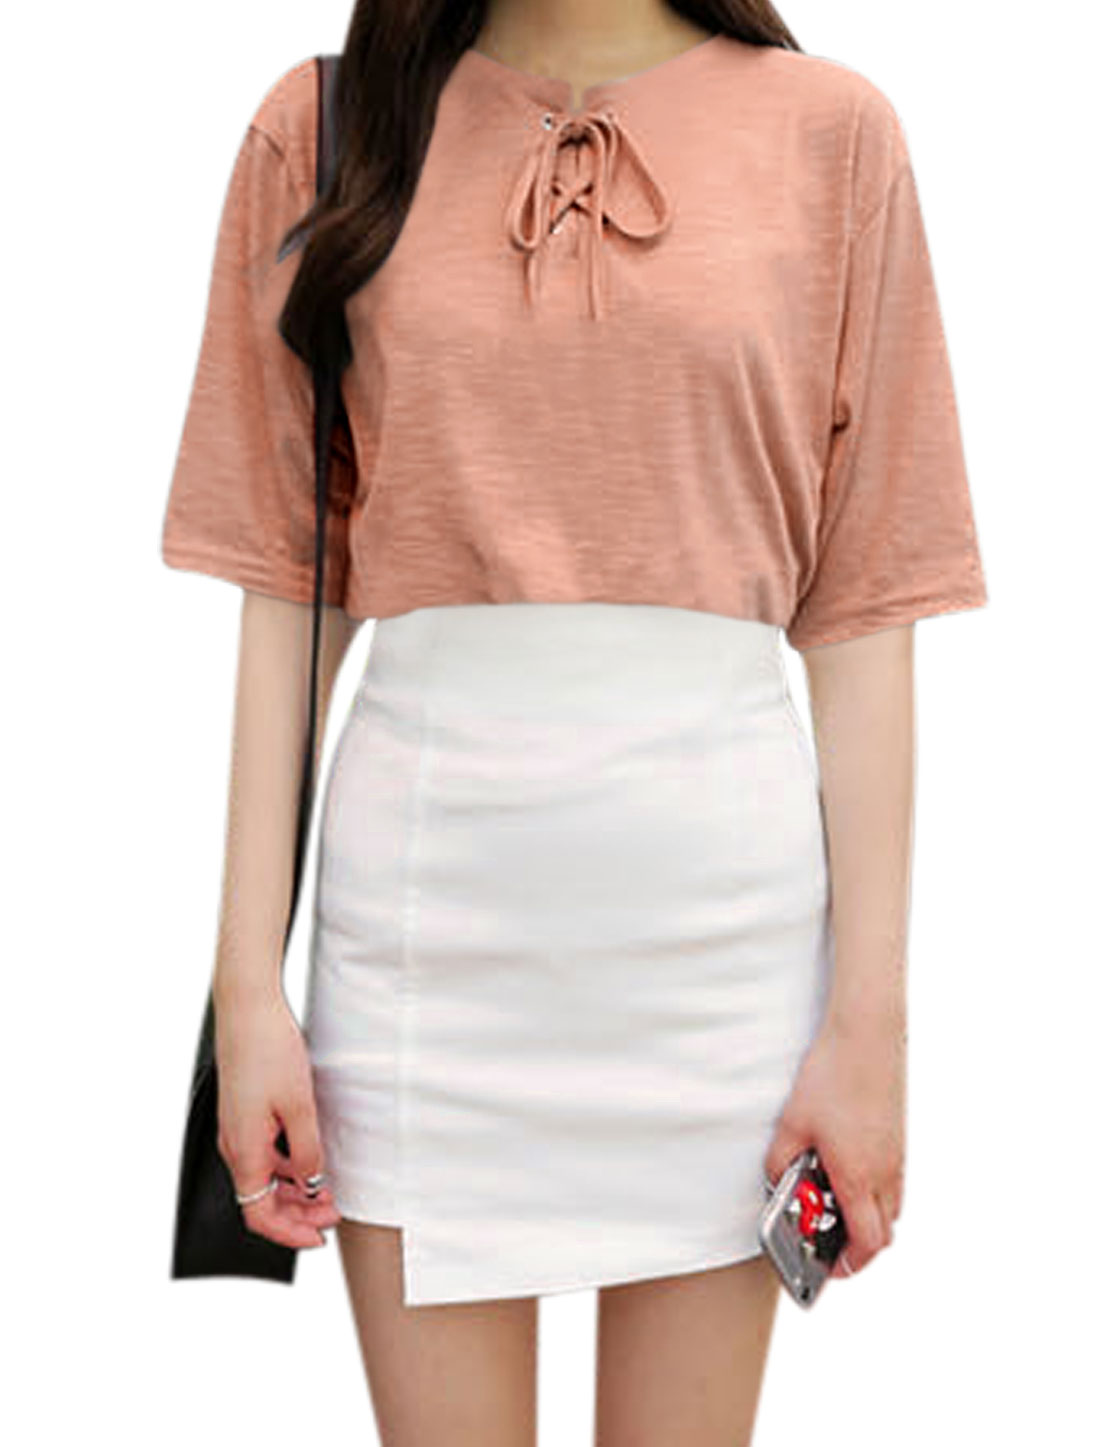 Ladies Split Neckline Short Sleeves Lace-Up Front Casual Tops Pink XS